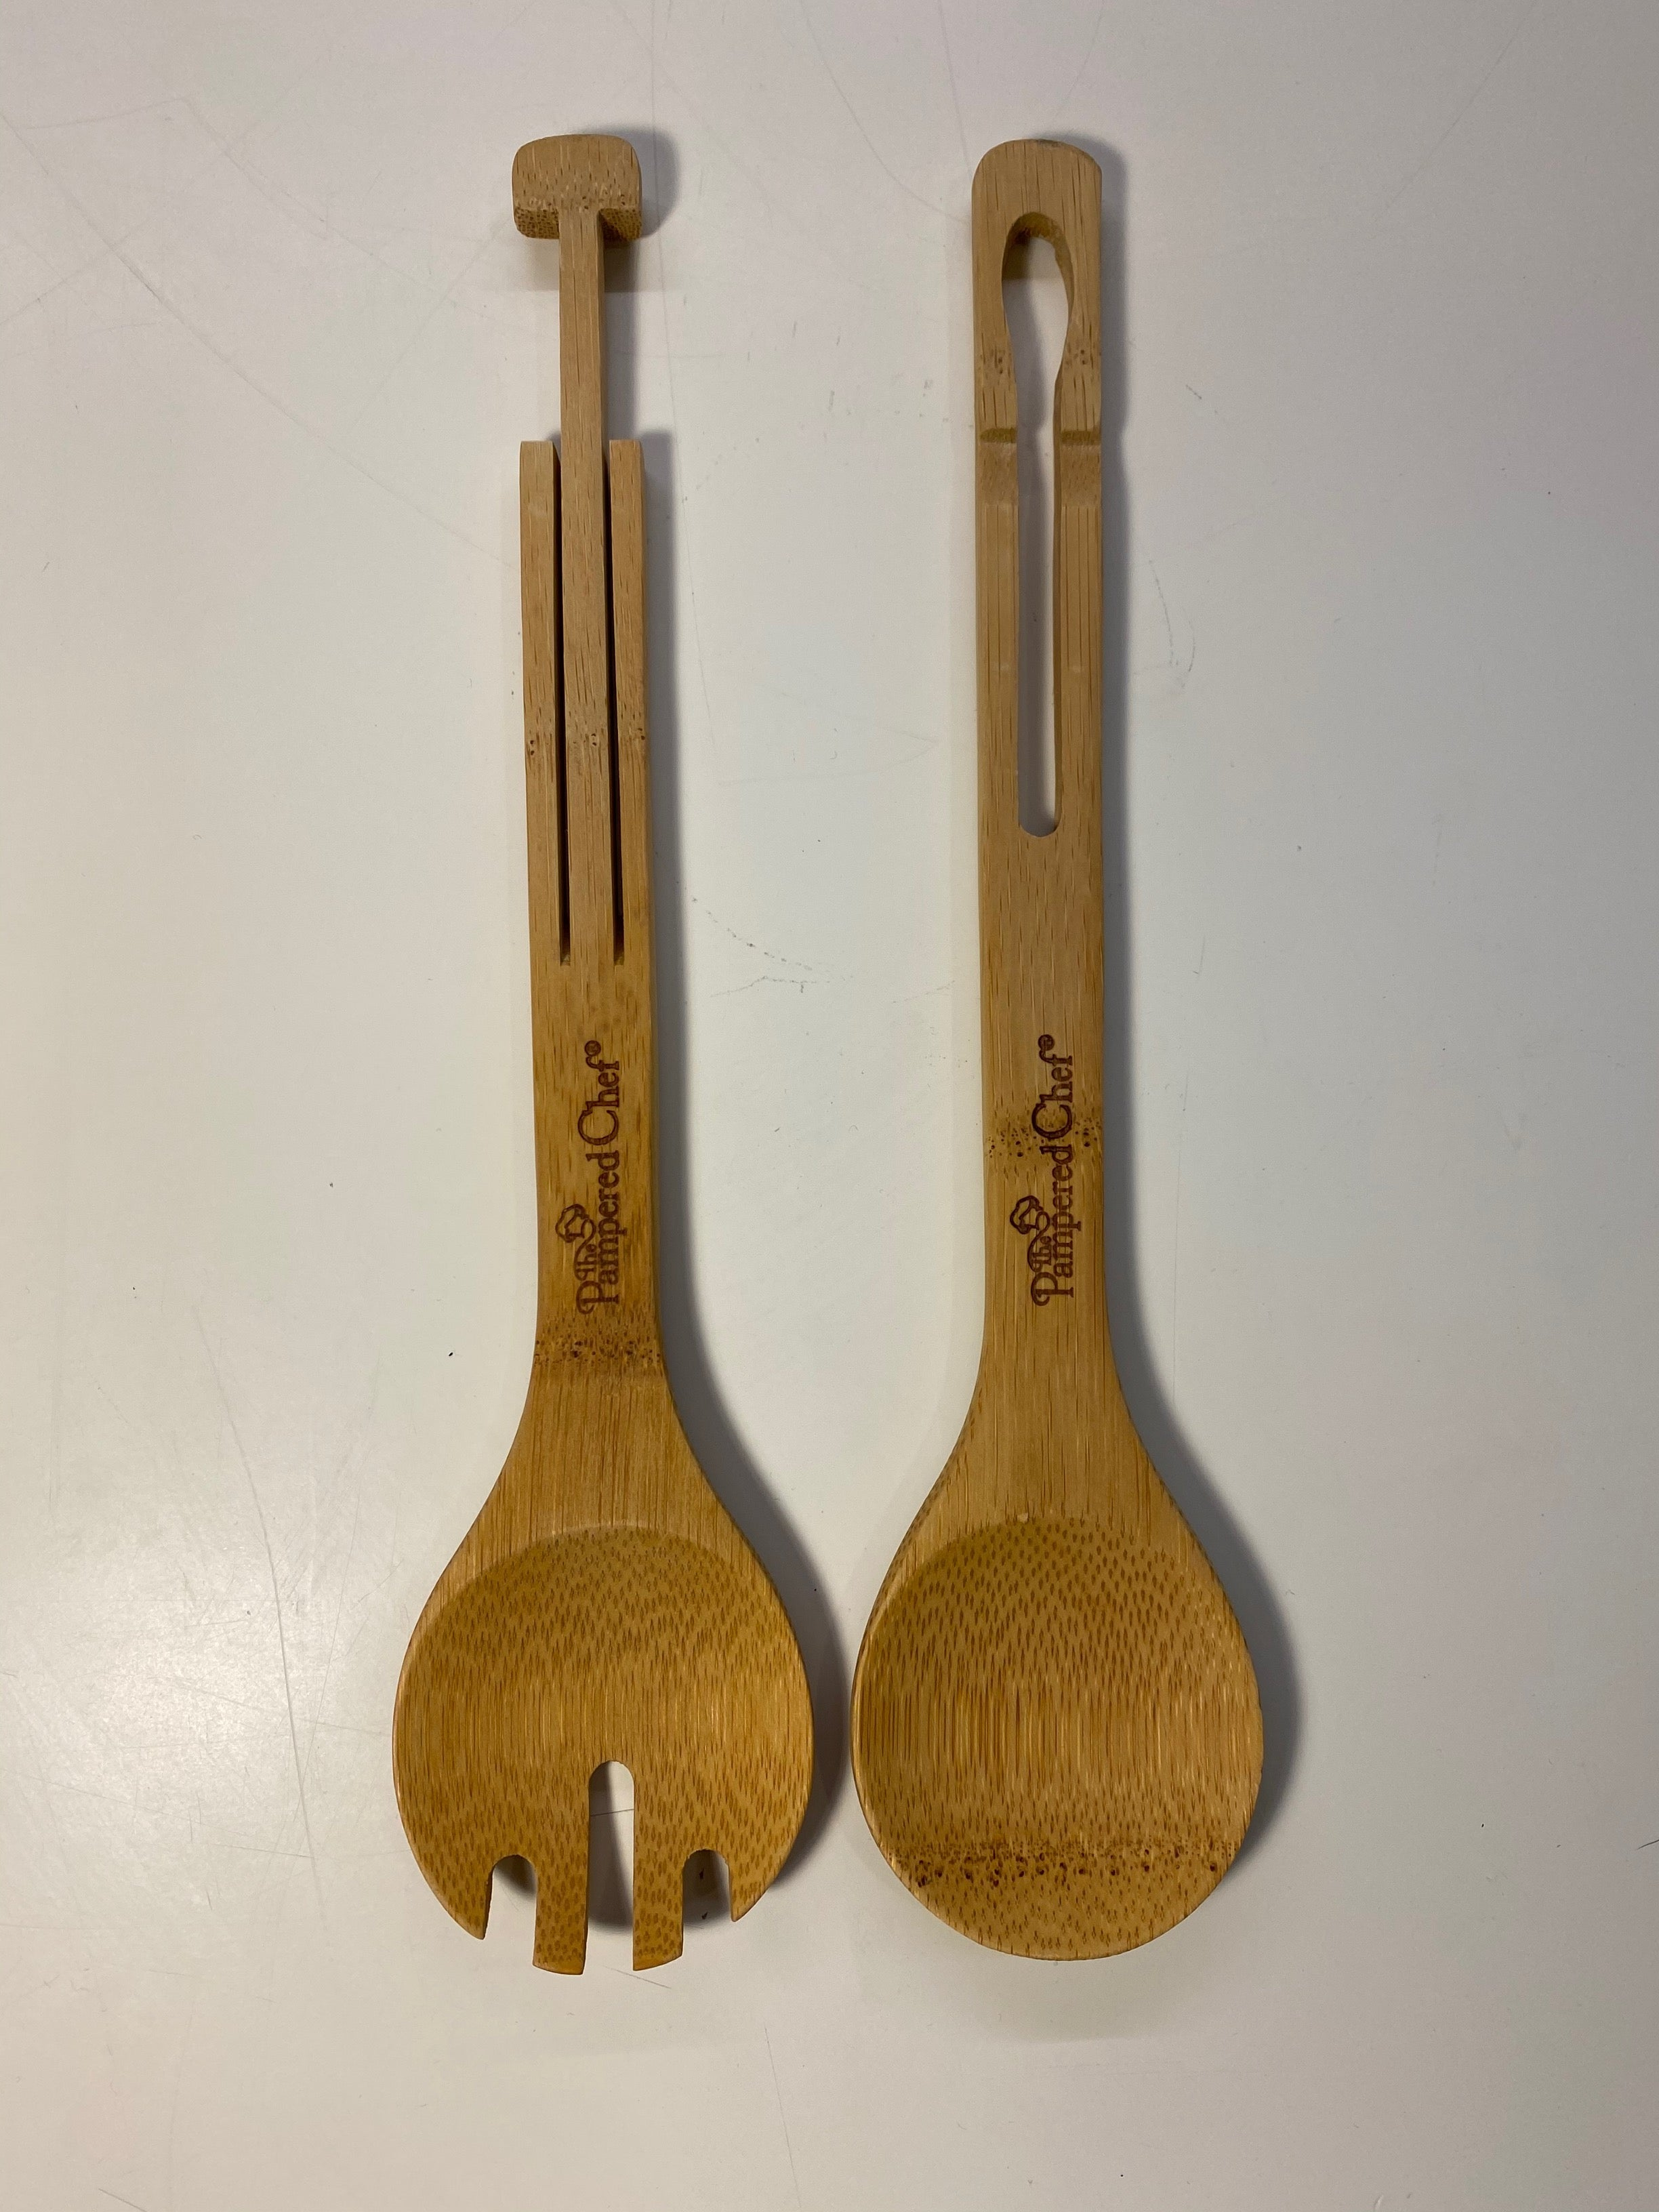 Pampered Chef Salad Servers